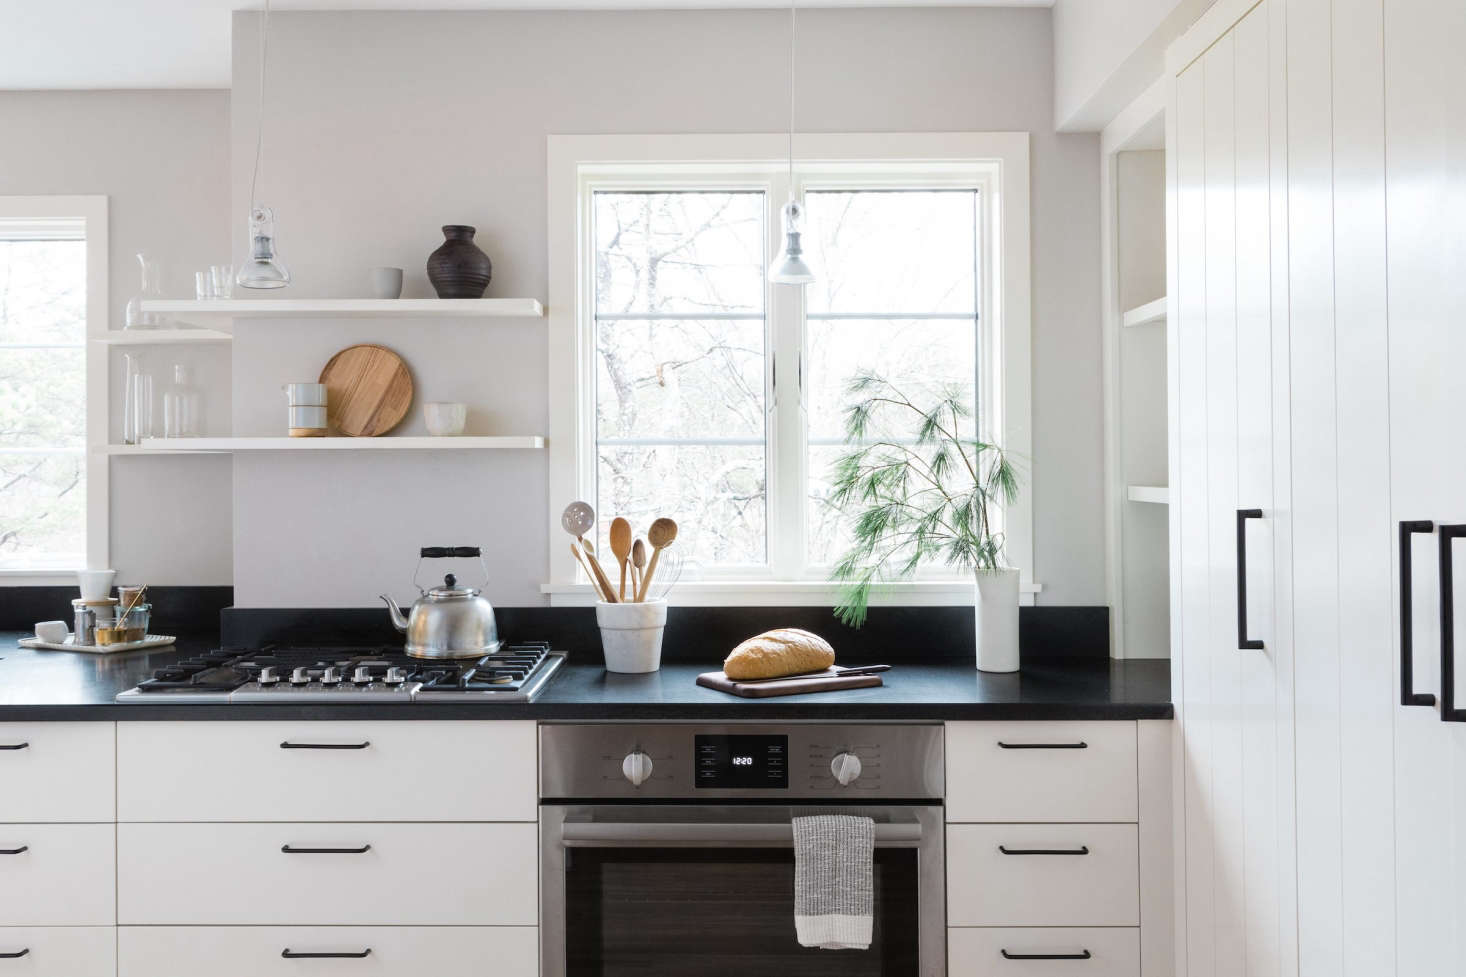 In this recently remodeled New England kitchen, the homeowner paired a Bosch gas cooktop with a Bosch wall oven. Getthe whole look in A Japanese-Inflected Kitchen with Bosch Home Appliances.